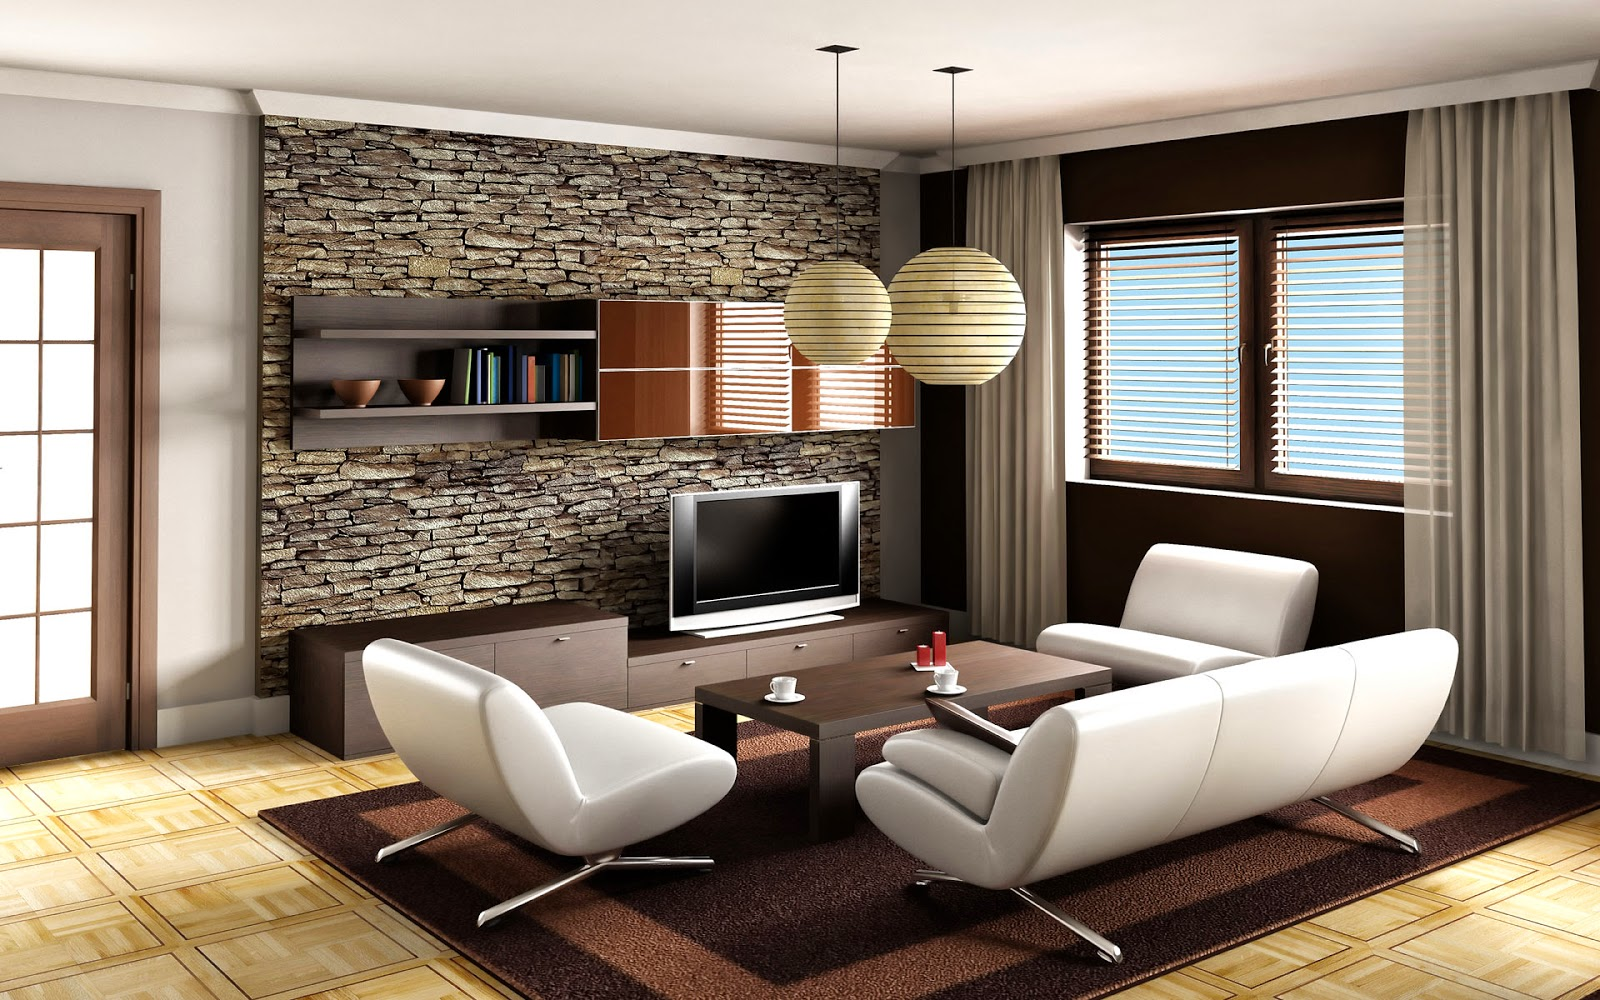 Living Room Couch 2 Living Room Decor Ideas Brown Leather Sofa Home